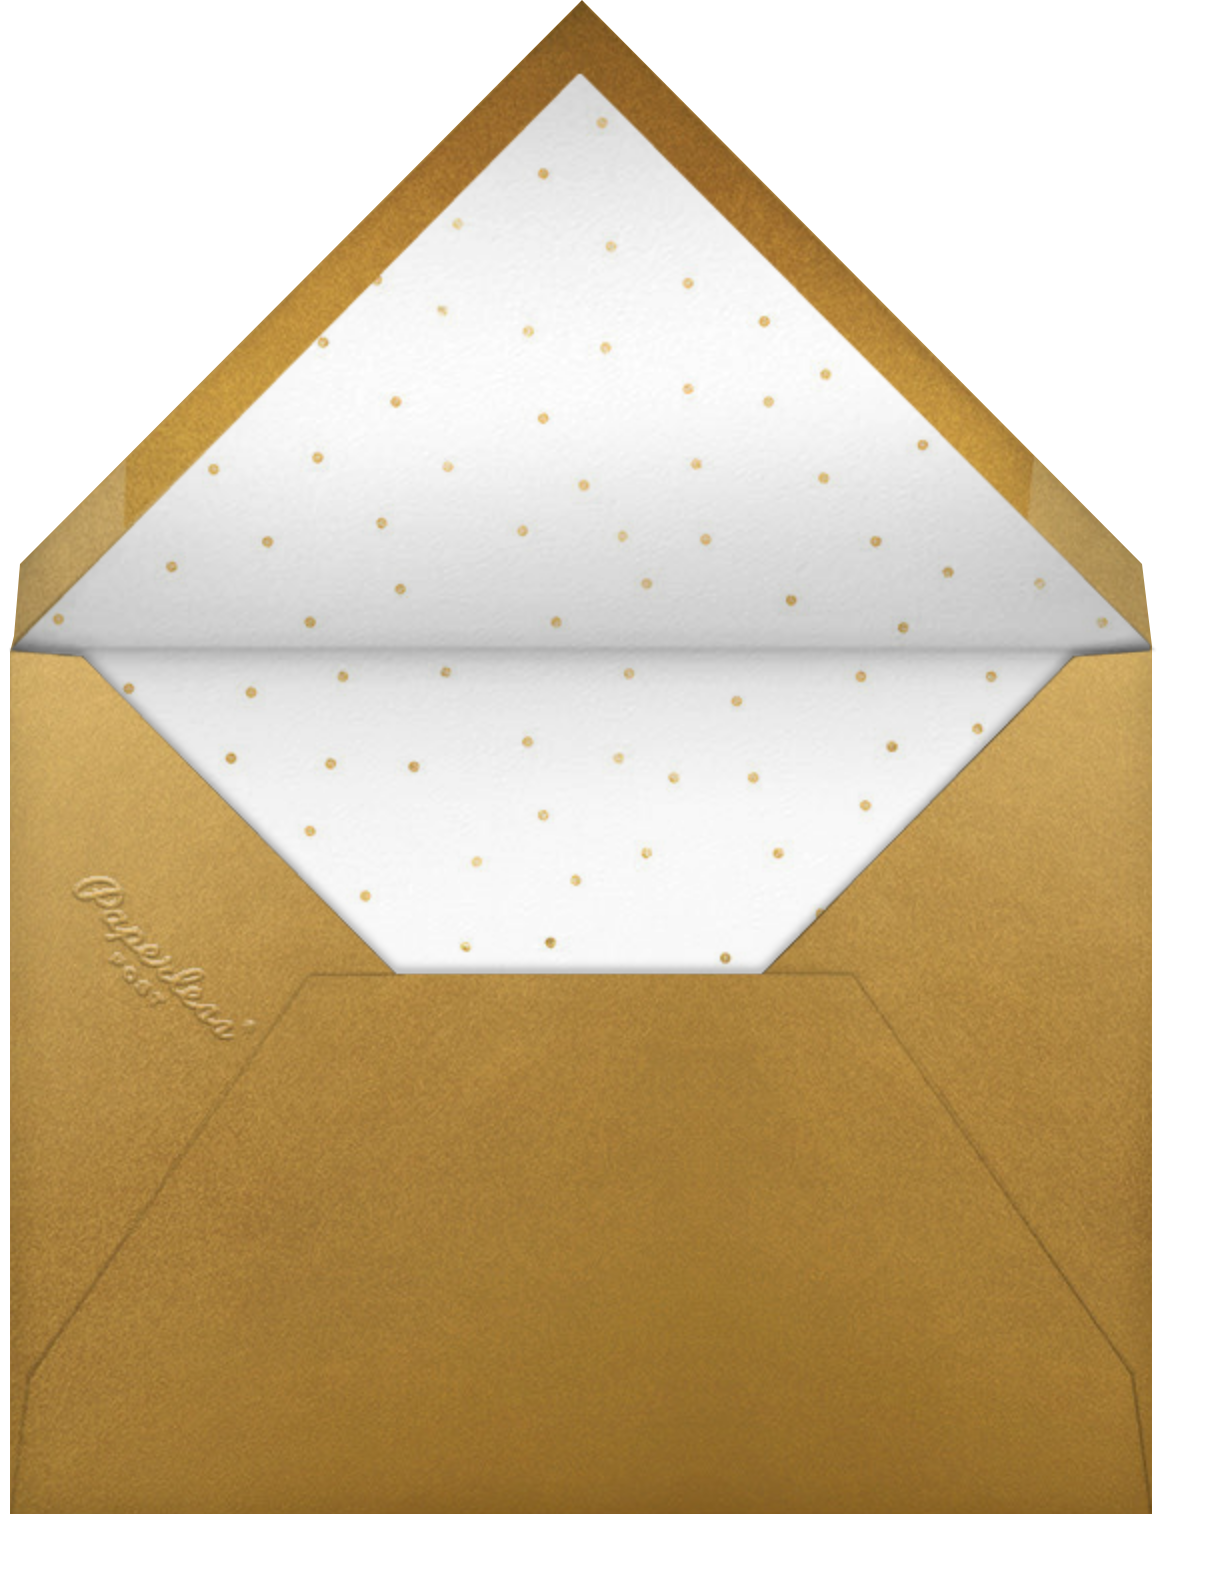 Winter Warmer - Paperless Post - Corporate invitations - envelope back